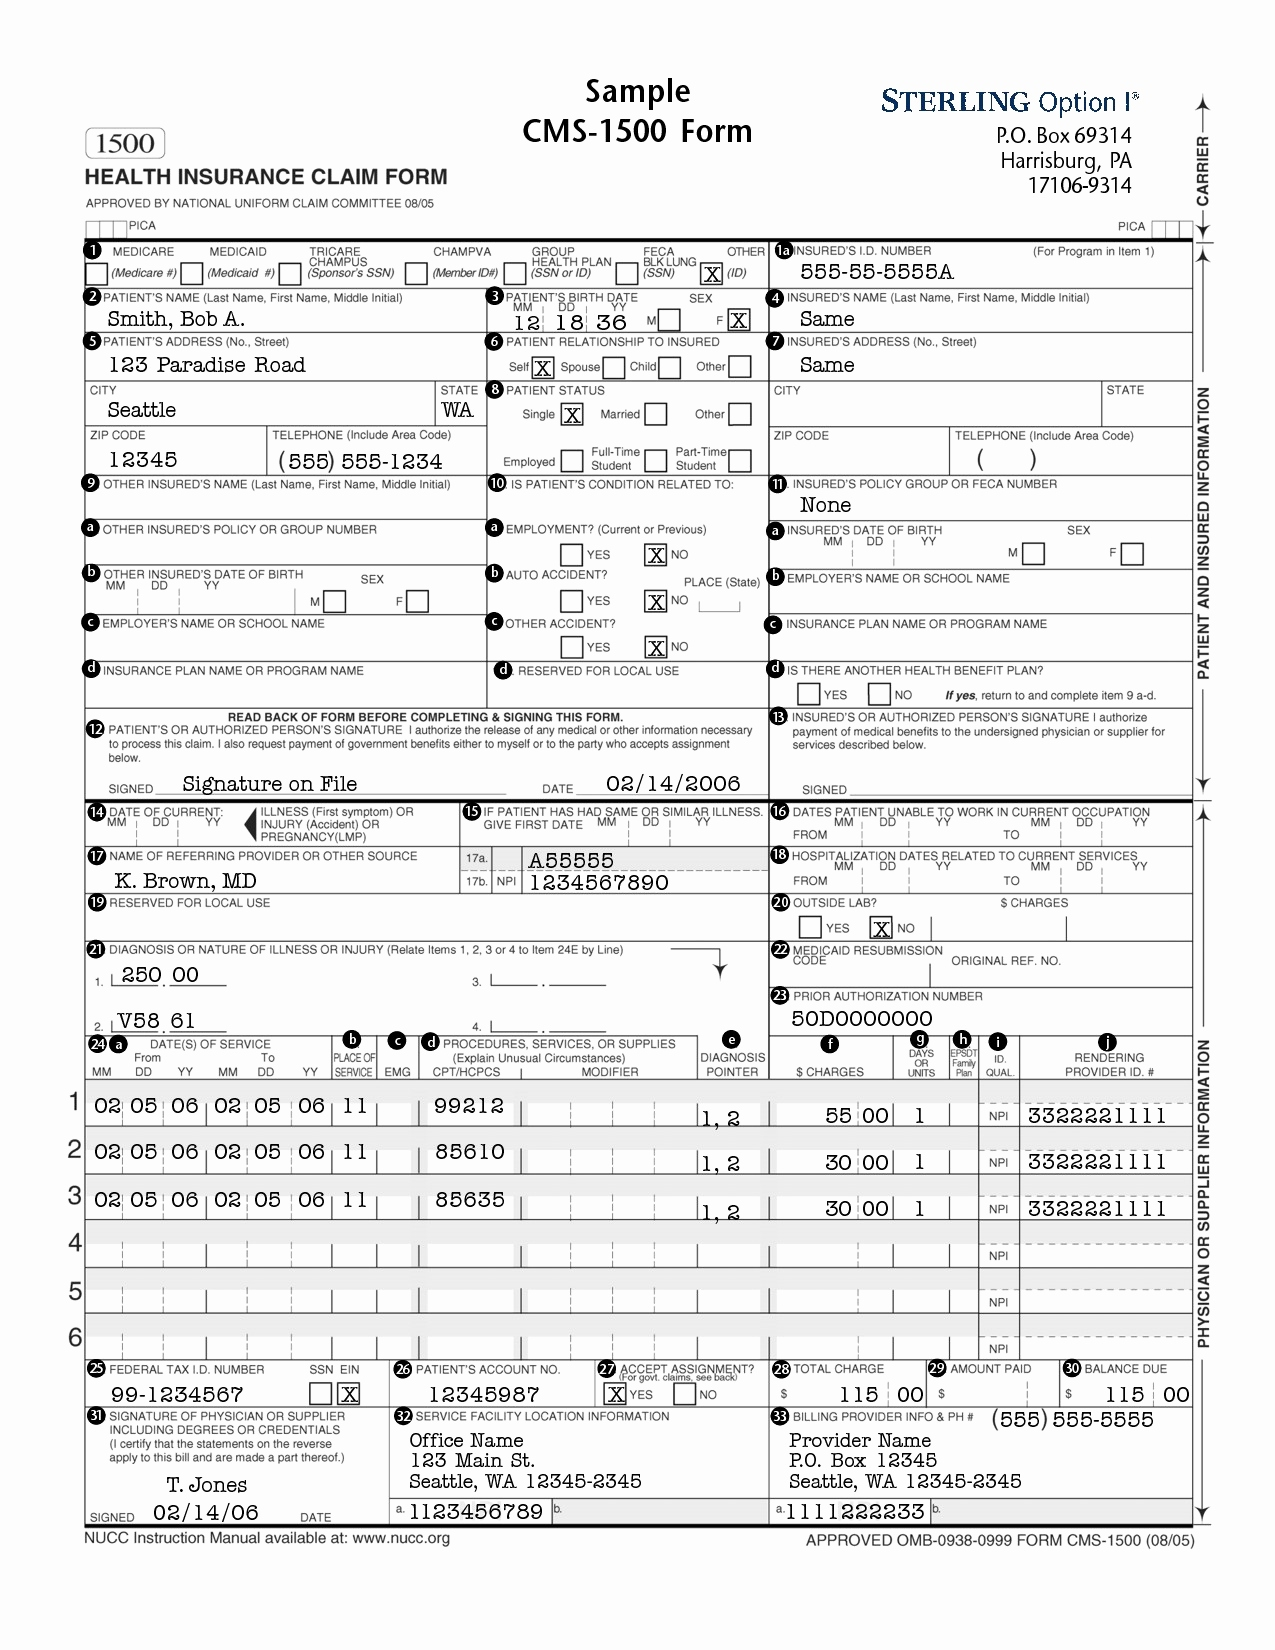 Acord Insurance Forms Inspirational 1500 Health Insurance Claim Form Template